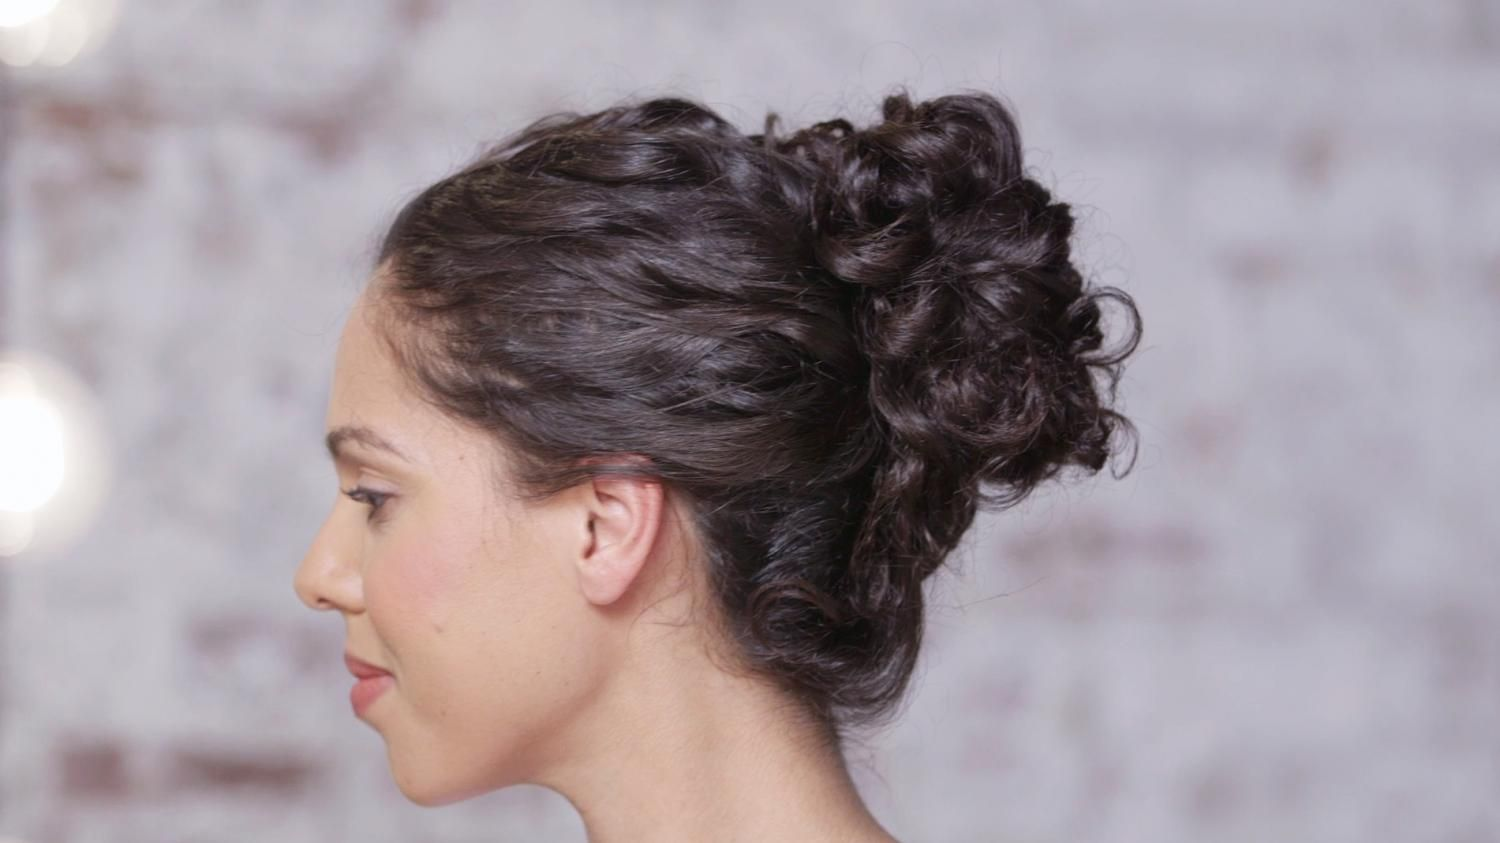 Achieve A Beautiful Curly Hair Look For Long Hair With The Help Of Tresemme Stylist Tyler Laswell Tyler Sho Curly Hair Styles Beautiful Curly Hair Hair Looks